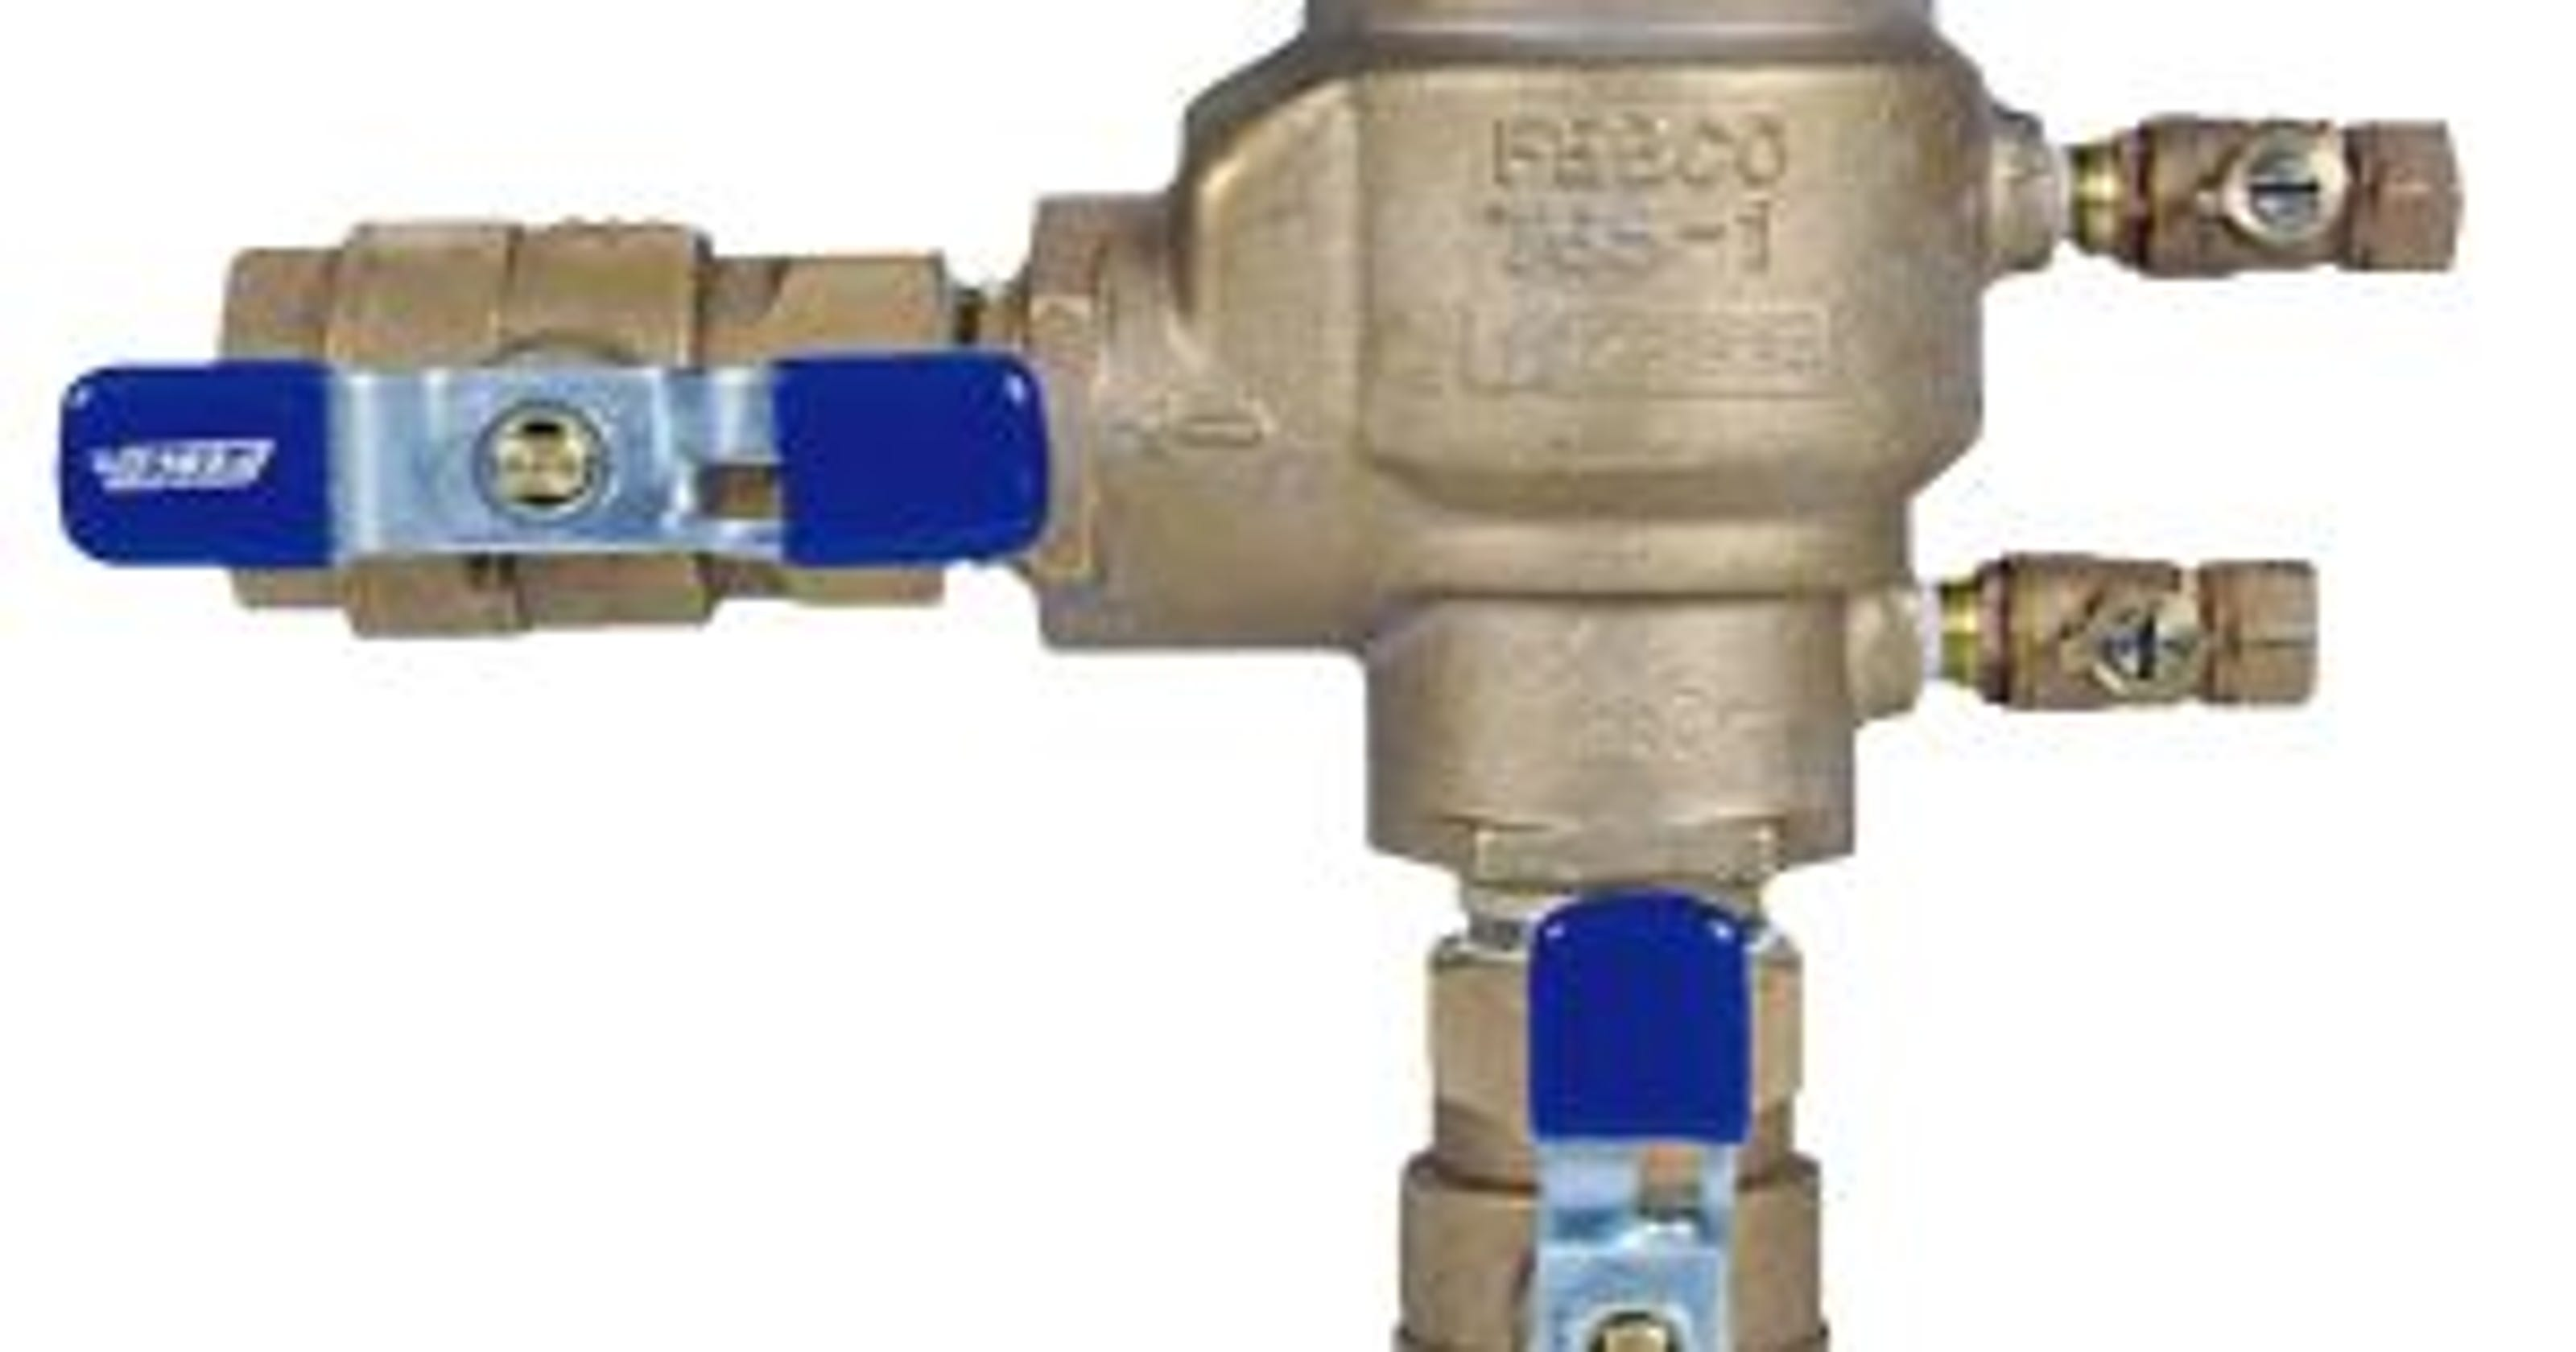 How to blow out or drain sprinkler system before freeze